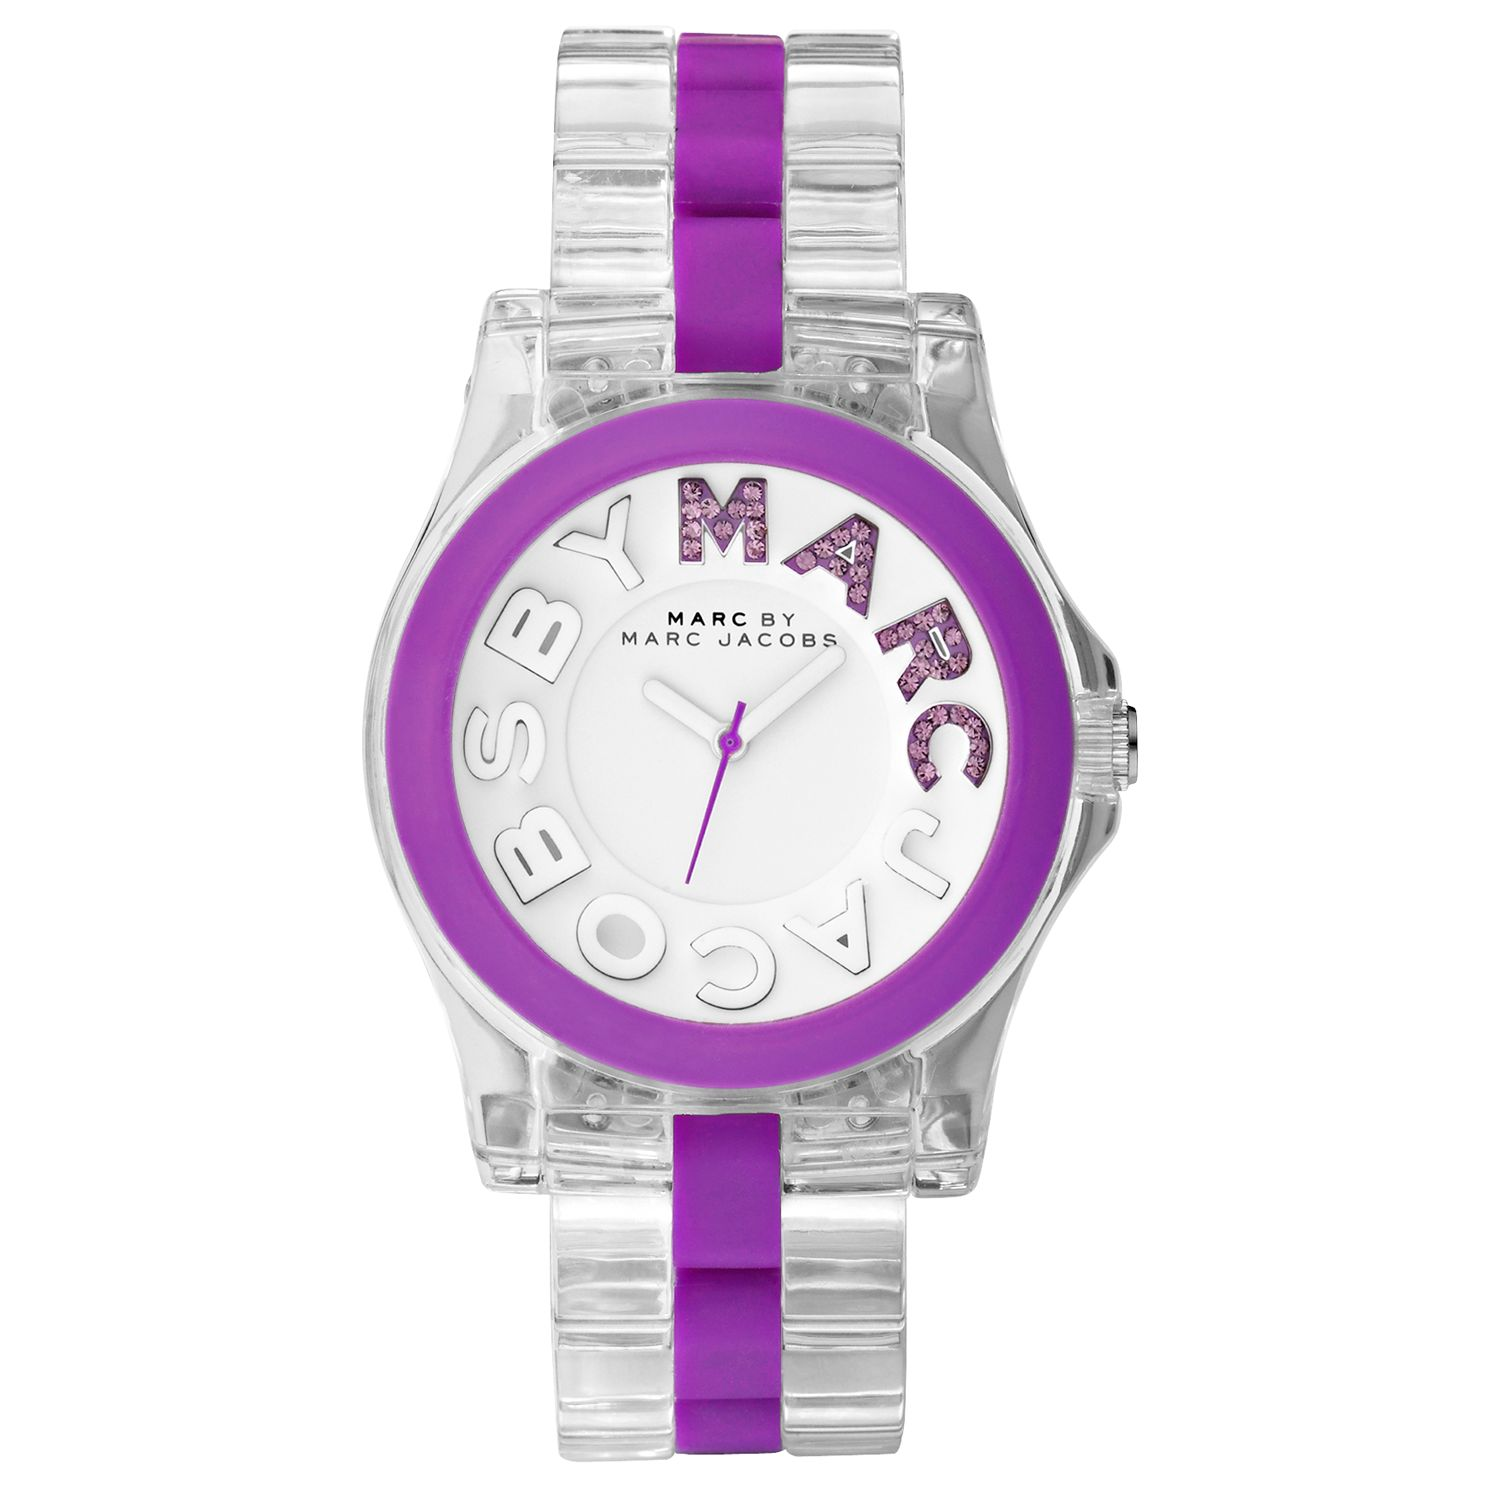 Marc by Marc Jacobs MBM4550 Women's Round White Dial Purple Bezel Clear Acrylic Bracelet Watch